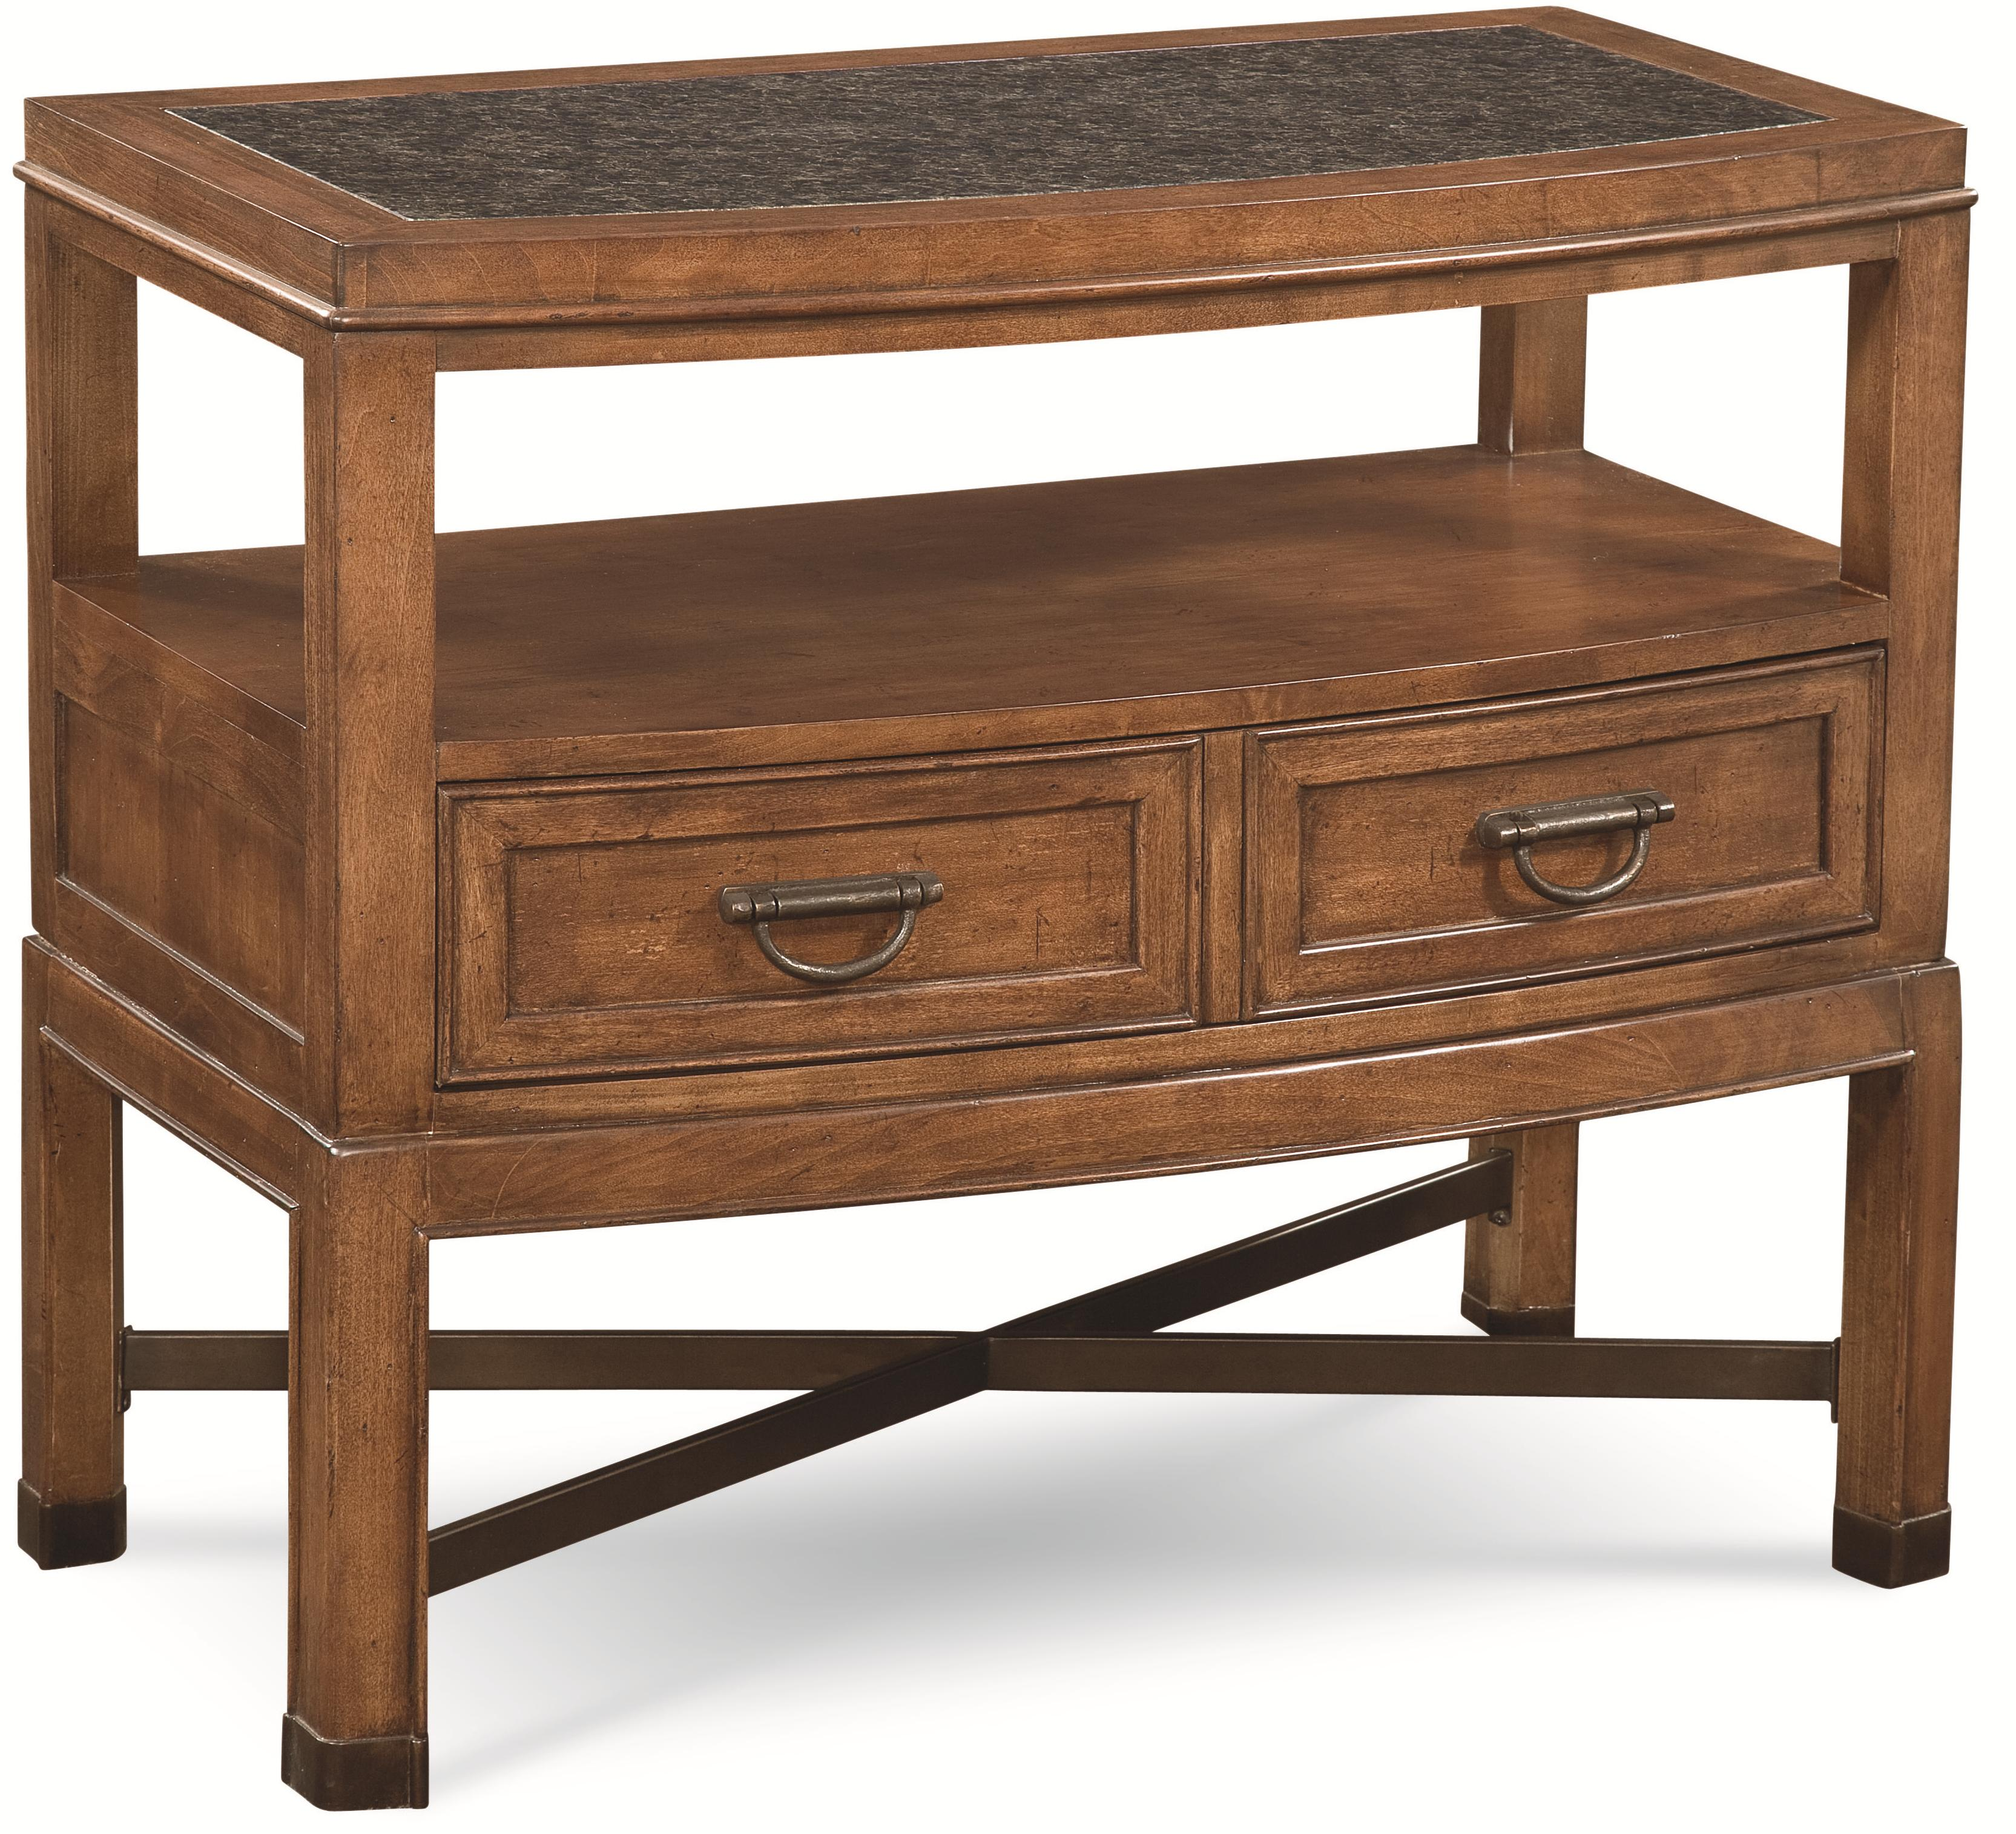 Thomasville® American Anthem Nightstand - Item Number: 82811-806